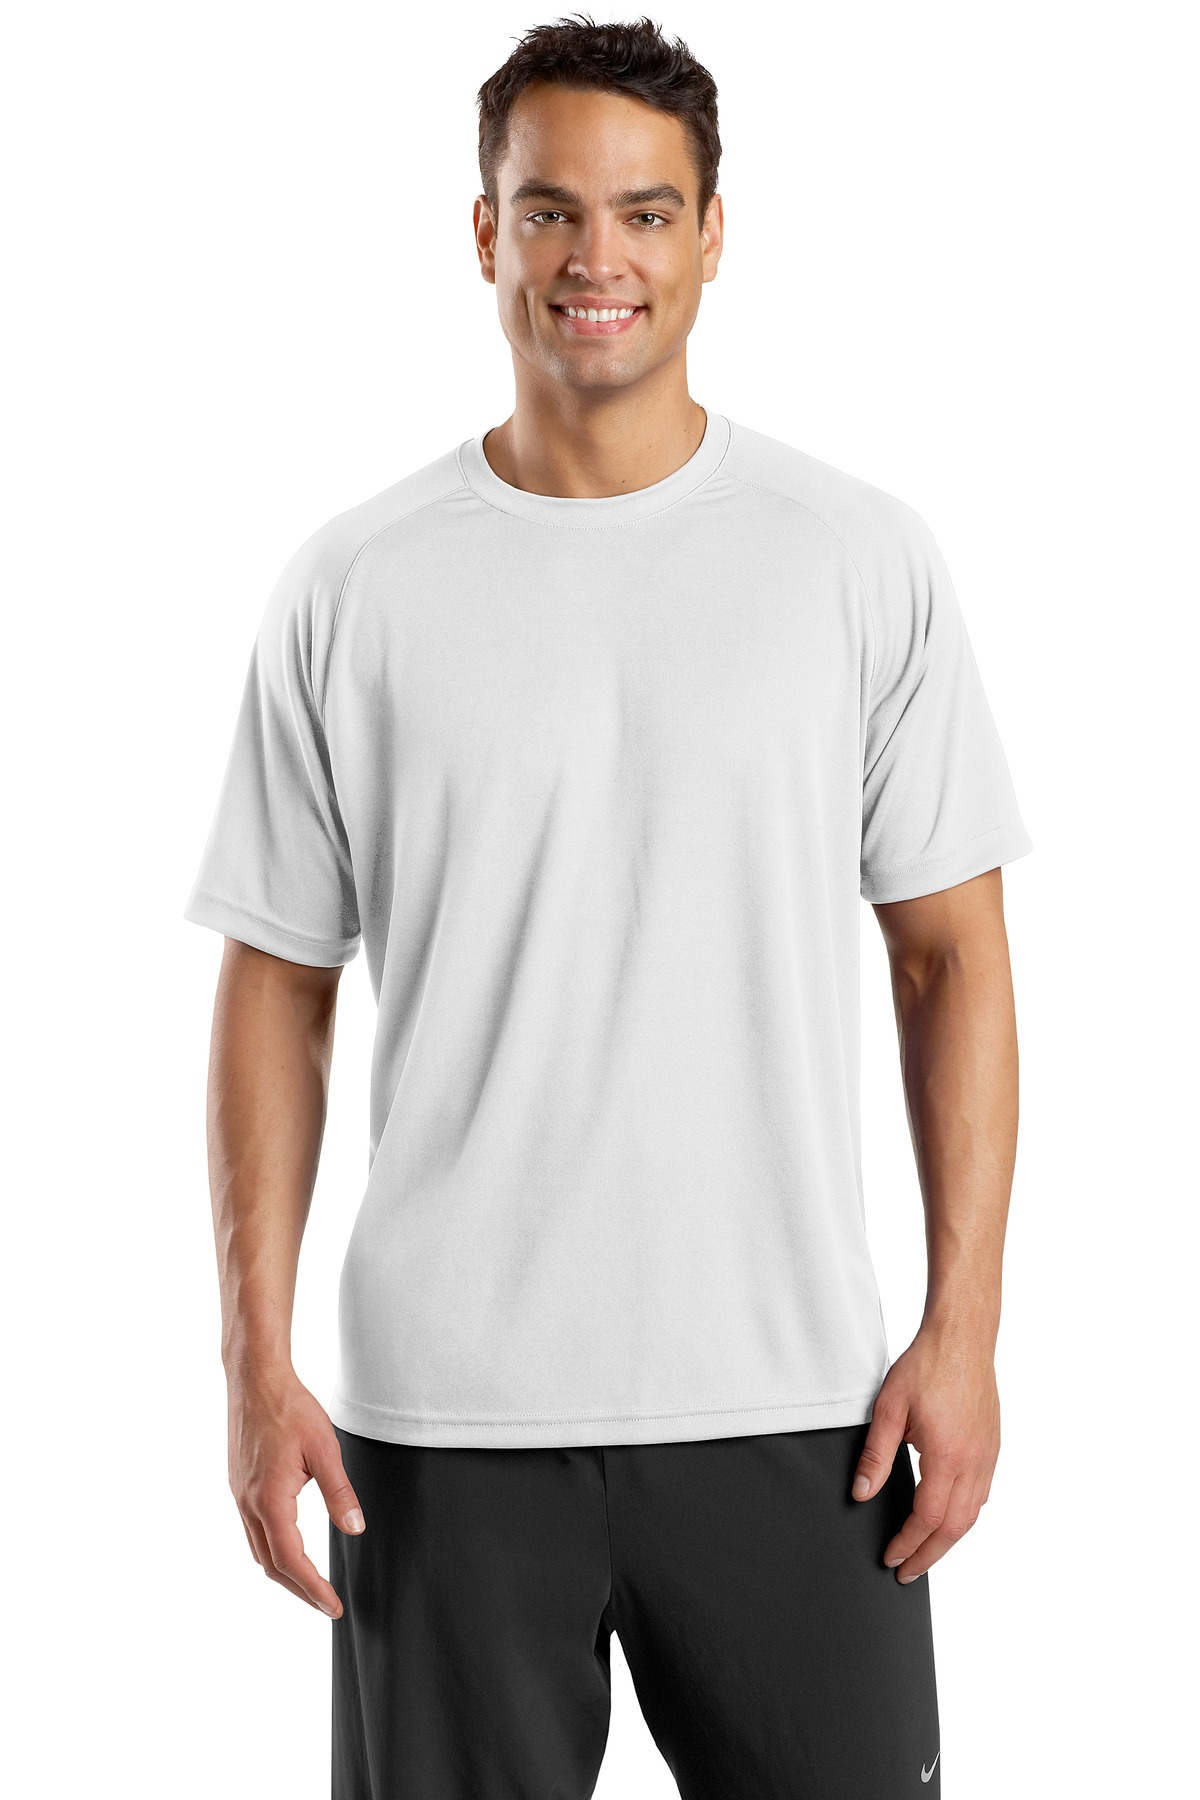 Plain white t shirts front and back the for Model white t shirt